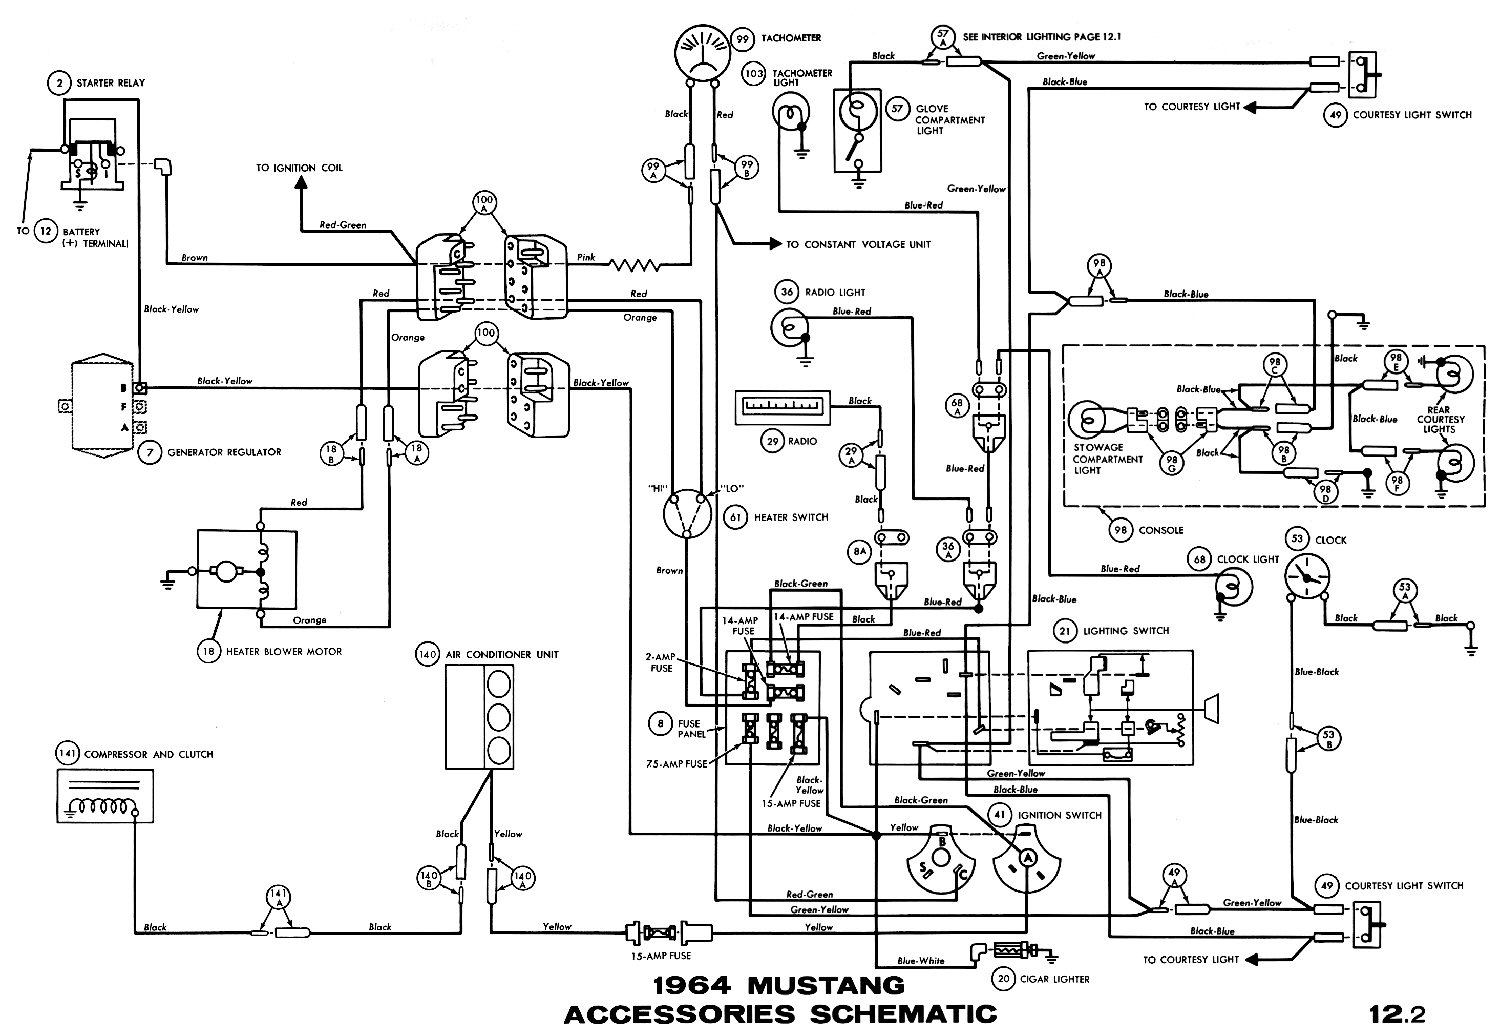 1968 mustang heater motor wiring diagram wiring diagram 1964 mustang wiring diagrams average joe restoration1964 mustang accessories pictorial or schematic air conditioner